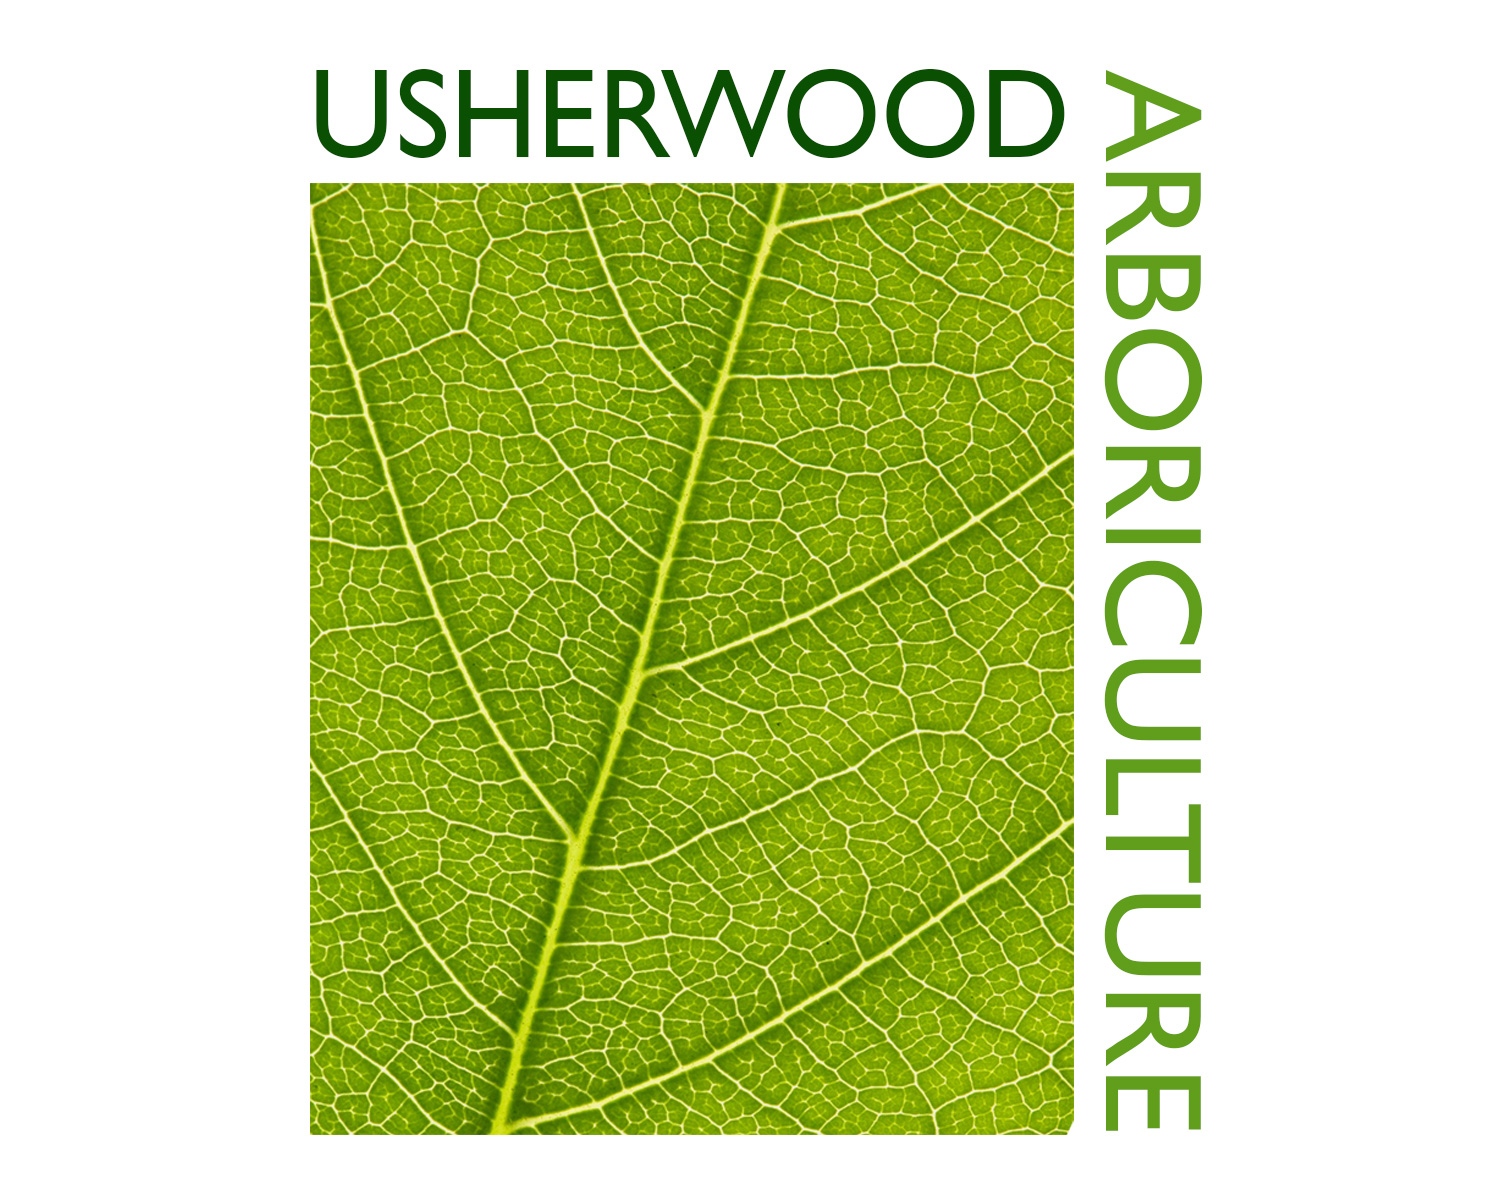 Caterham-Branding-Logo-Design-for-Usherwood-Arboriculture